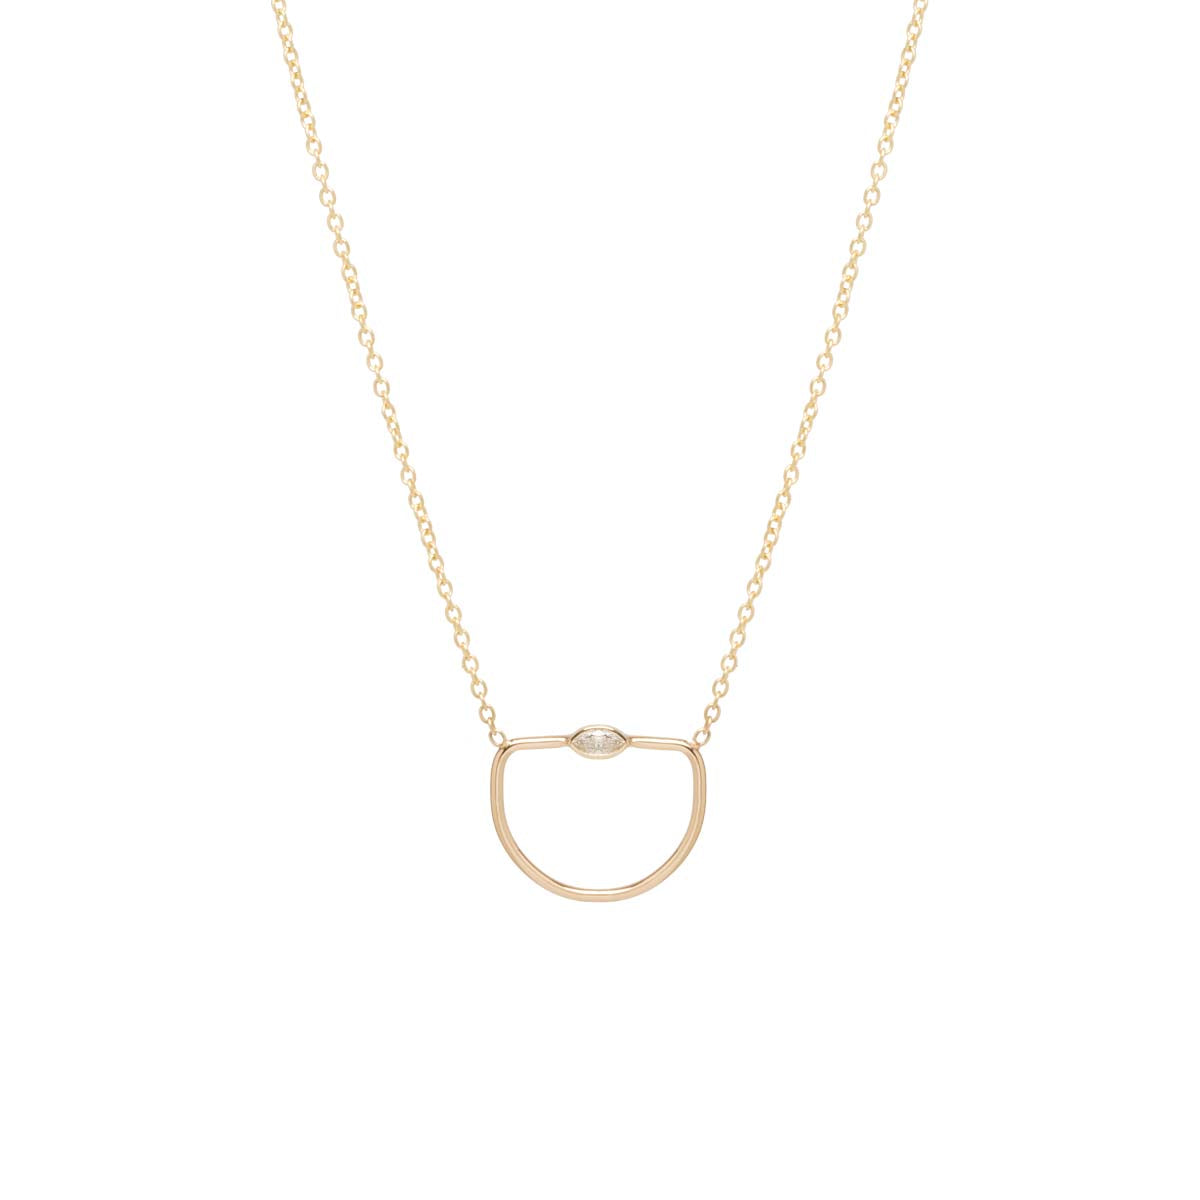 14k marquis diamond open horizon necklace